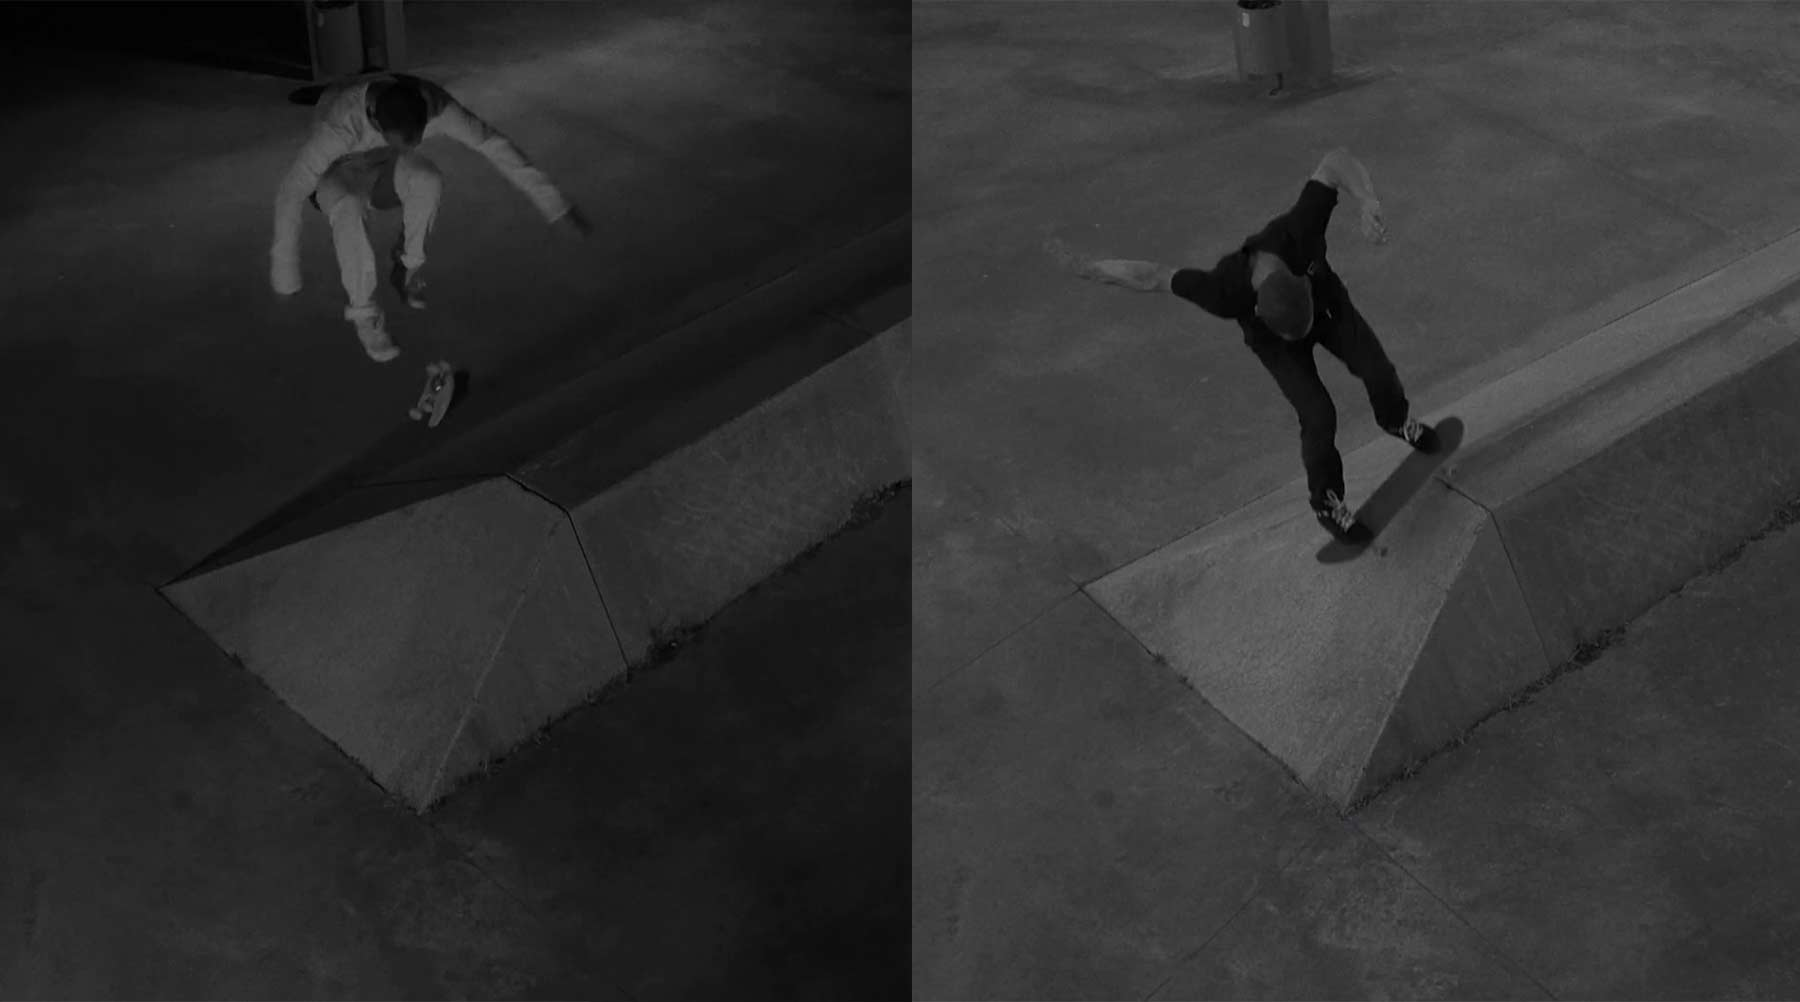 Skateboarden im Tag-Nacht-Wechsel skateboard-on-off-nowness